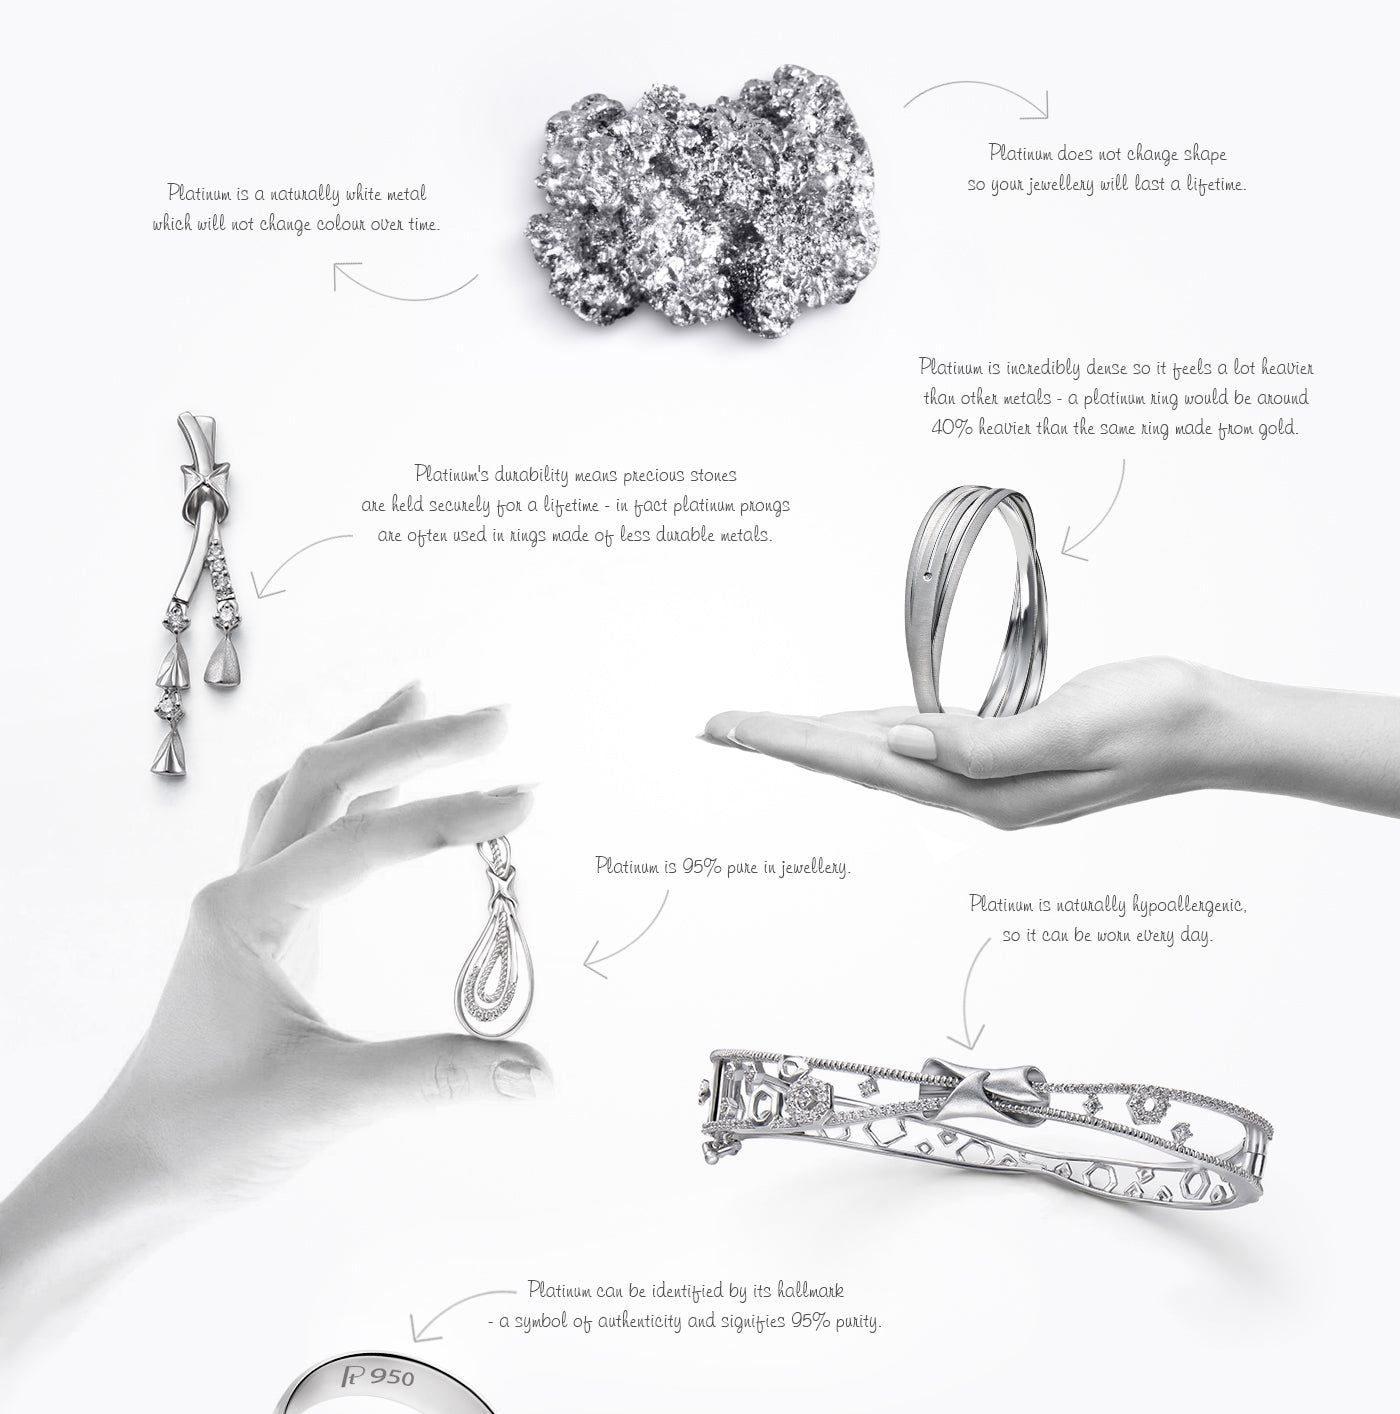 Qualities of Platinum that make it ideal for your jewelry